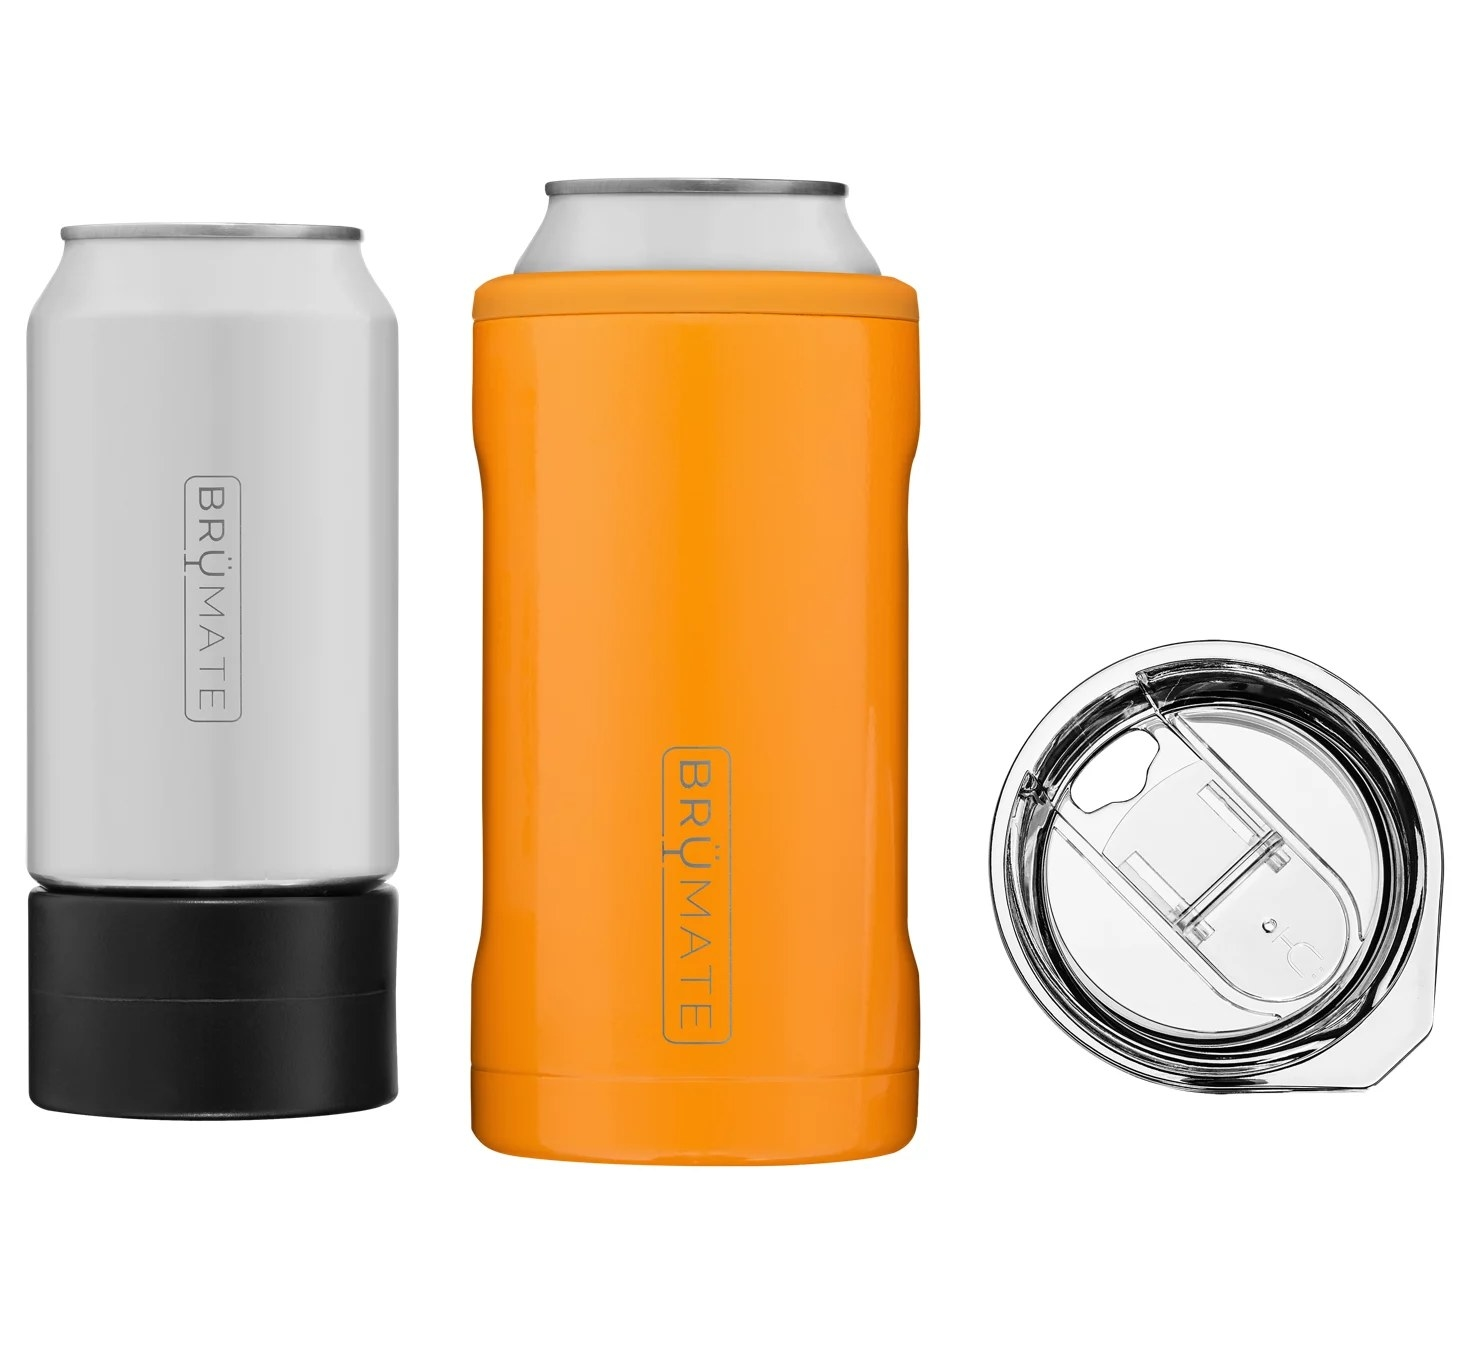 a can cooler with a clear lid